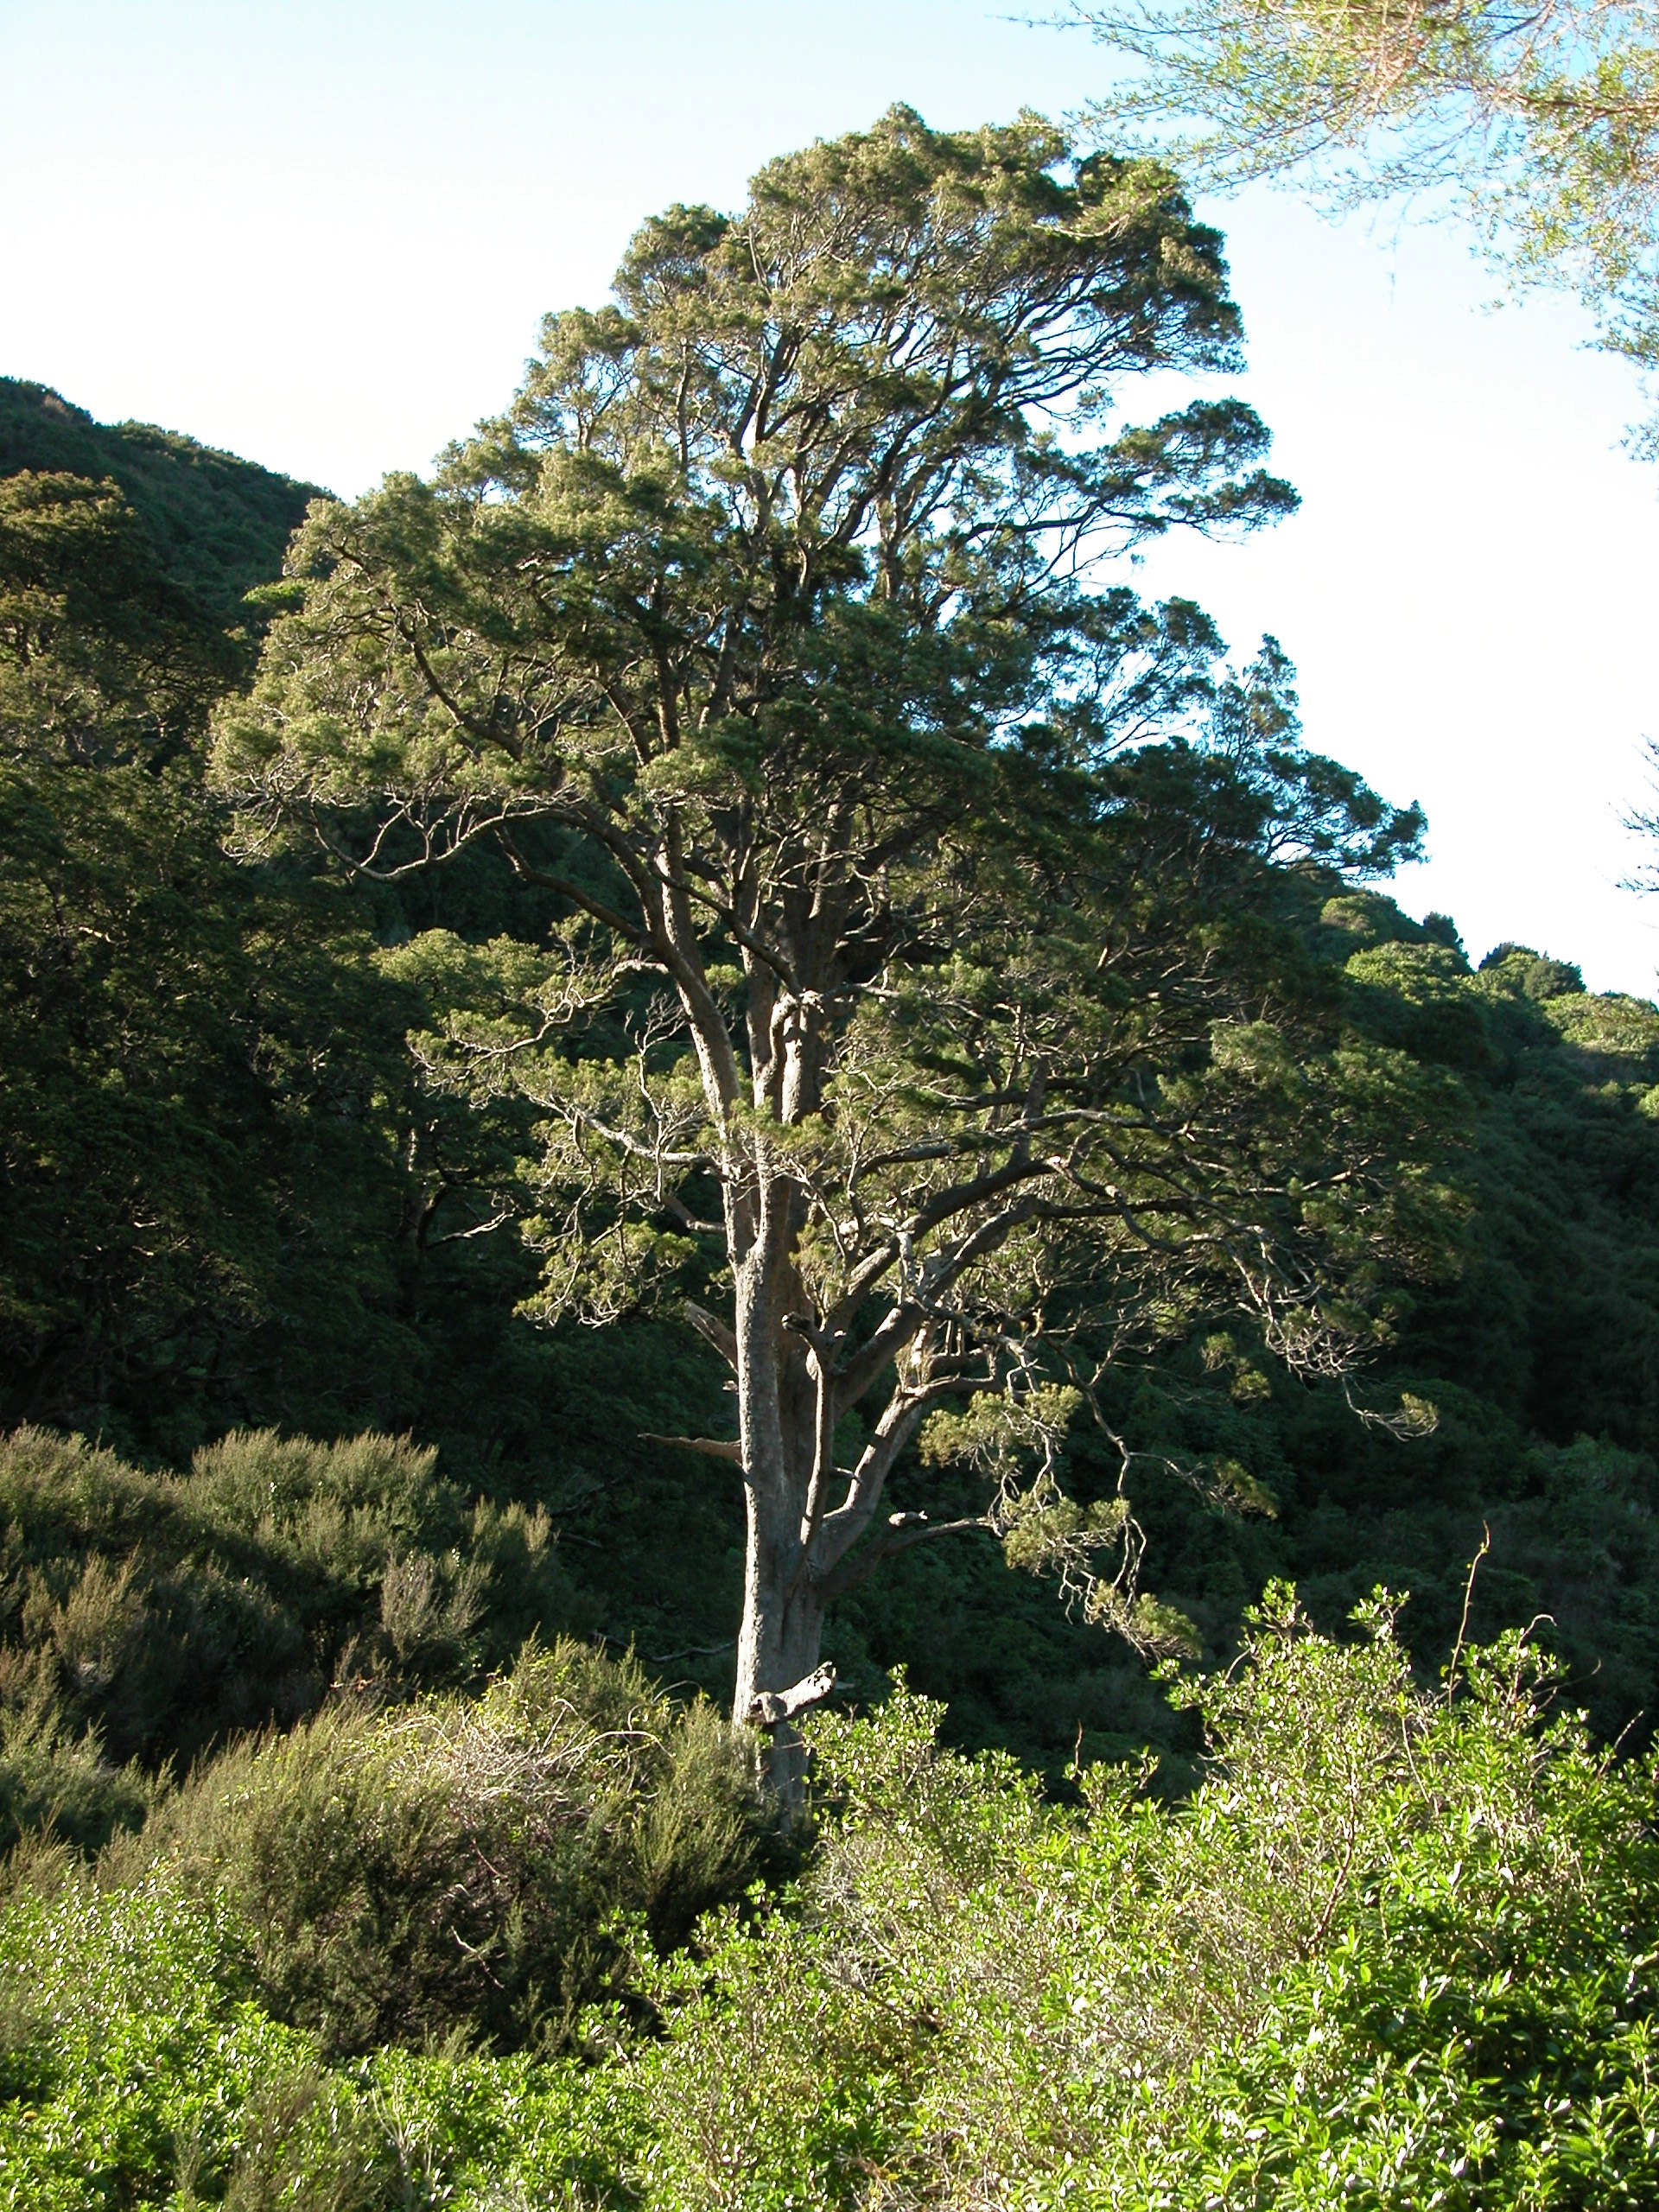 An old-growth Kahikatea (white pine) in the valley of Hinewai